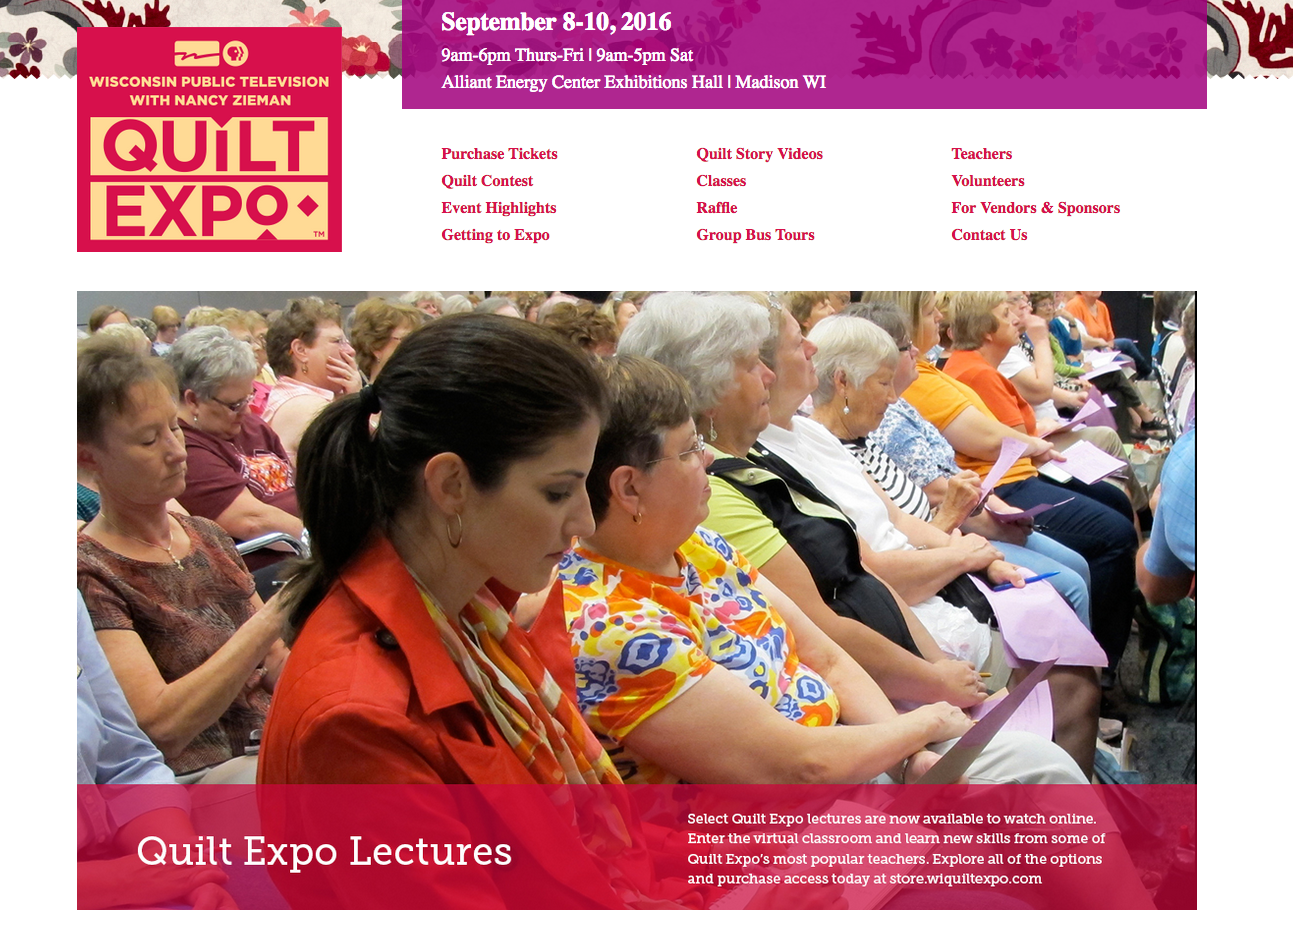 Quilt Expo, September 8-10, 2016 in Madison WI